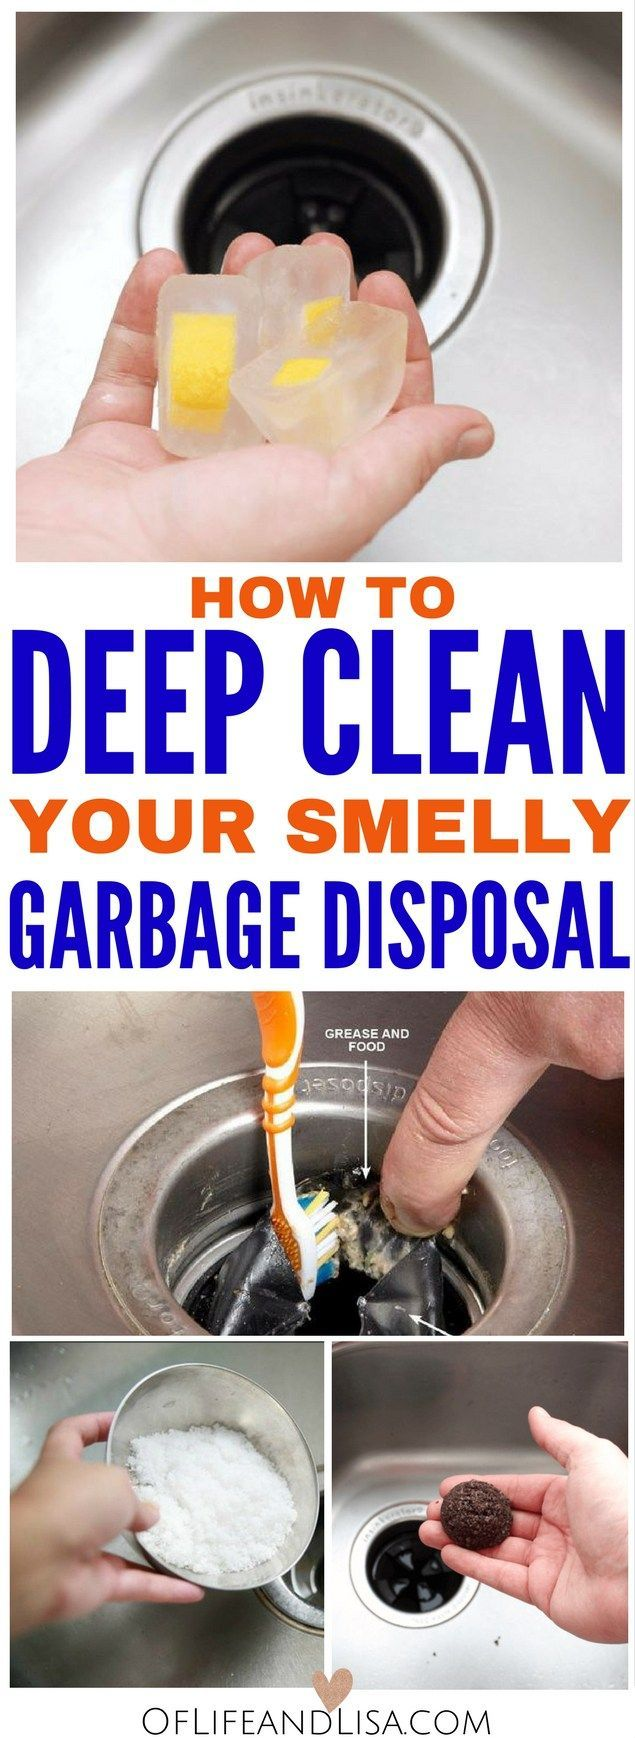 Here's 5 tips on how to deep clean your smelly garbage disposal.